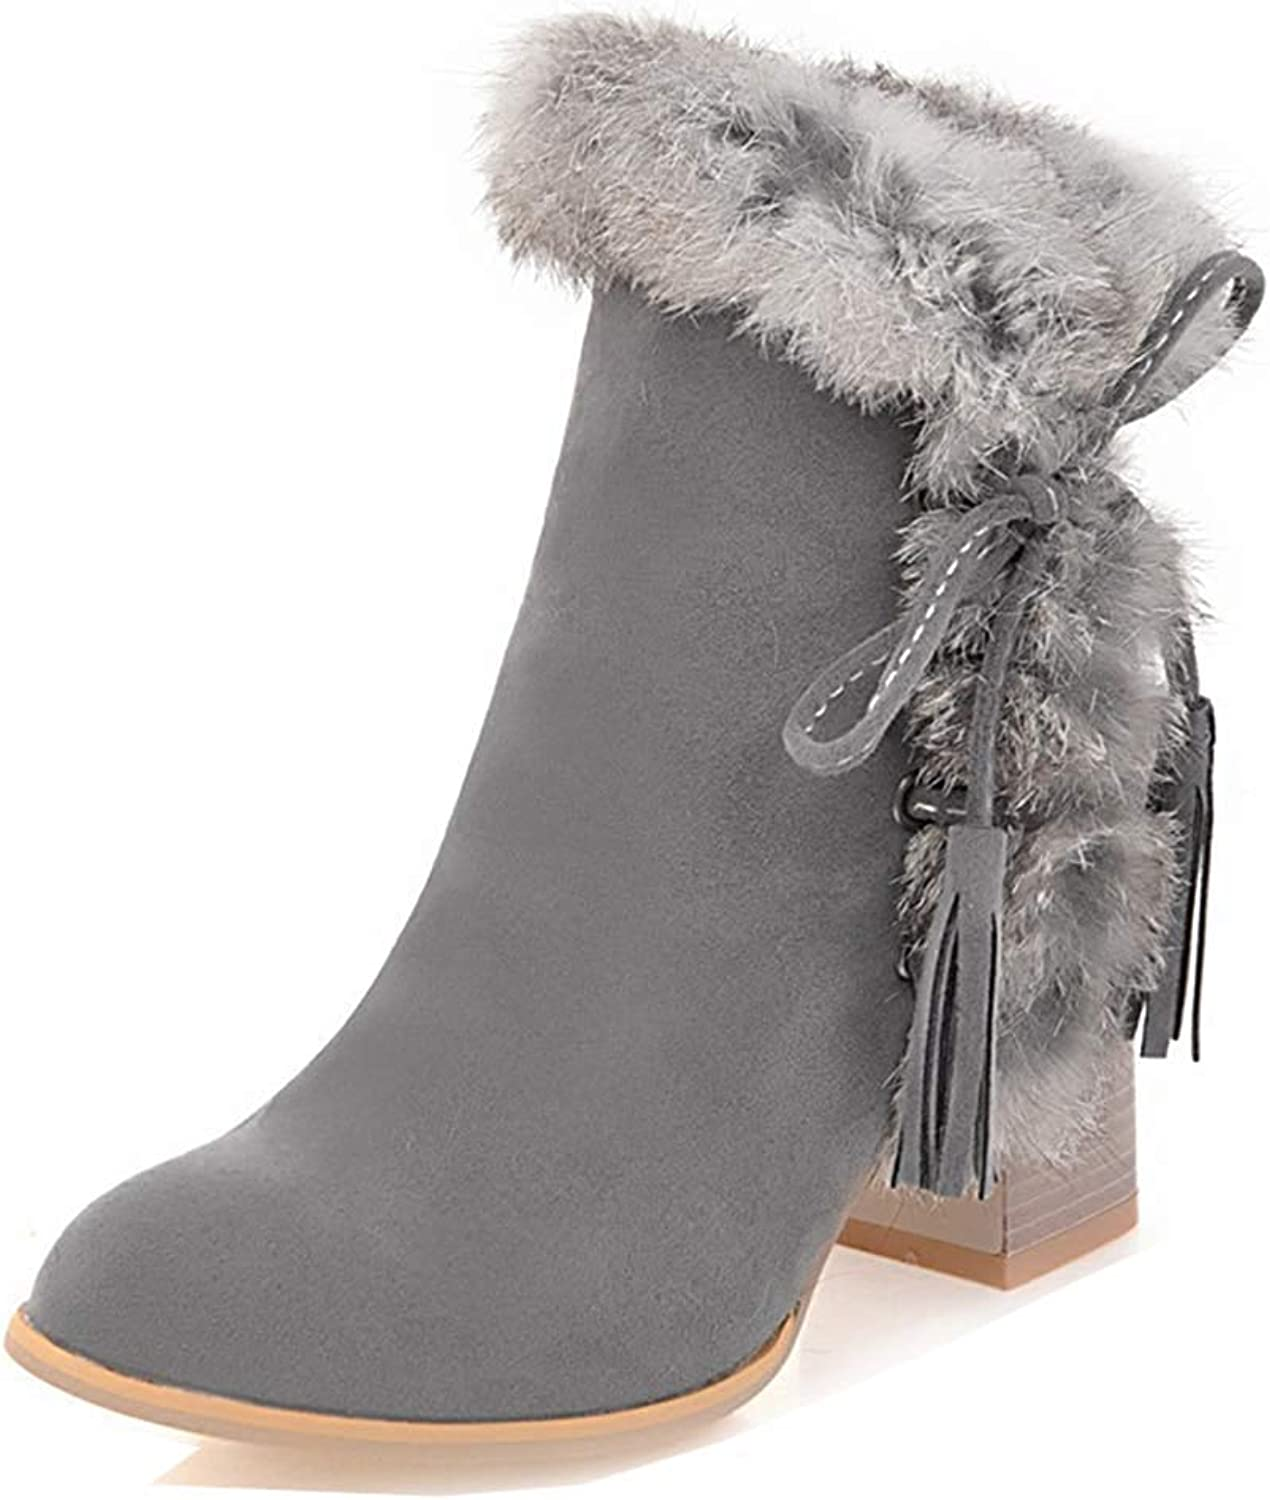 Women's Tassels Furry Round Toe Inside Zip Up High Stacked Heel Ankle Booties with Bows